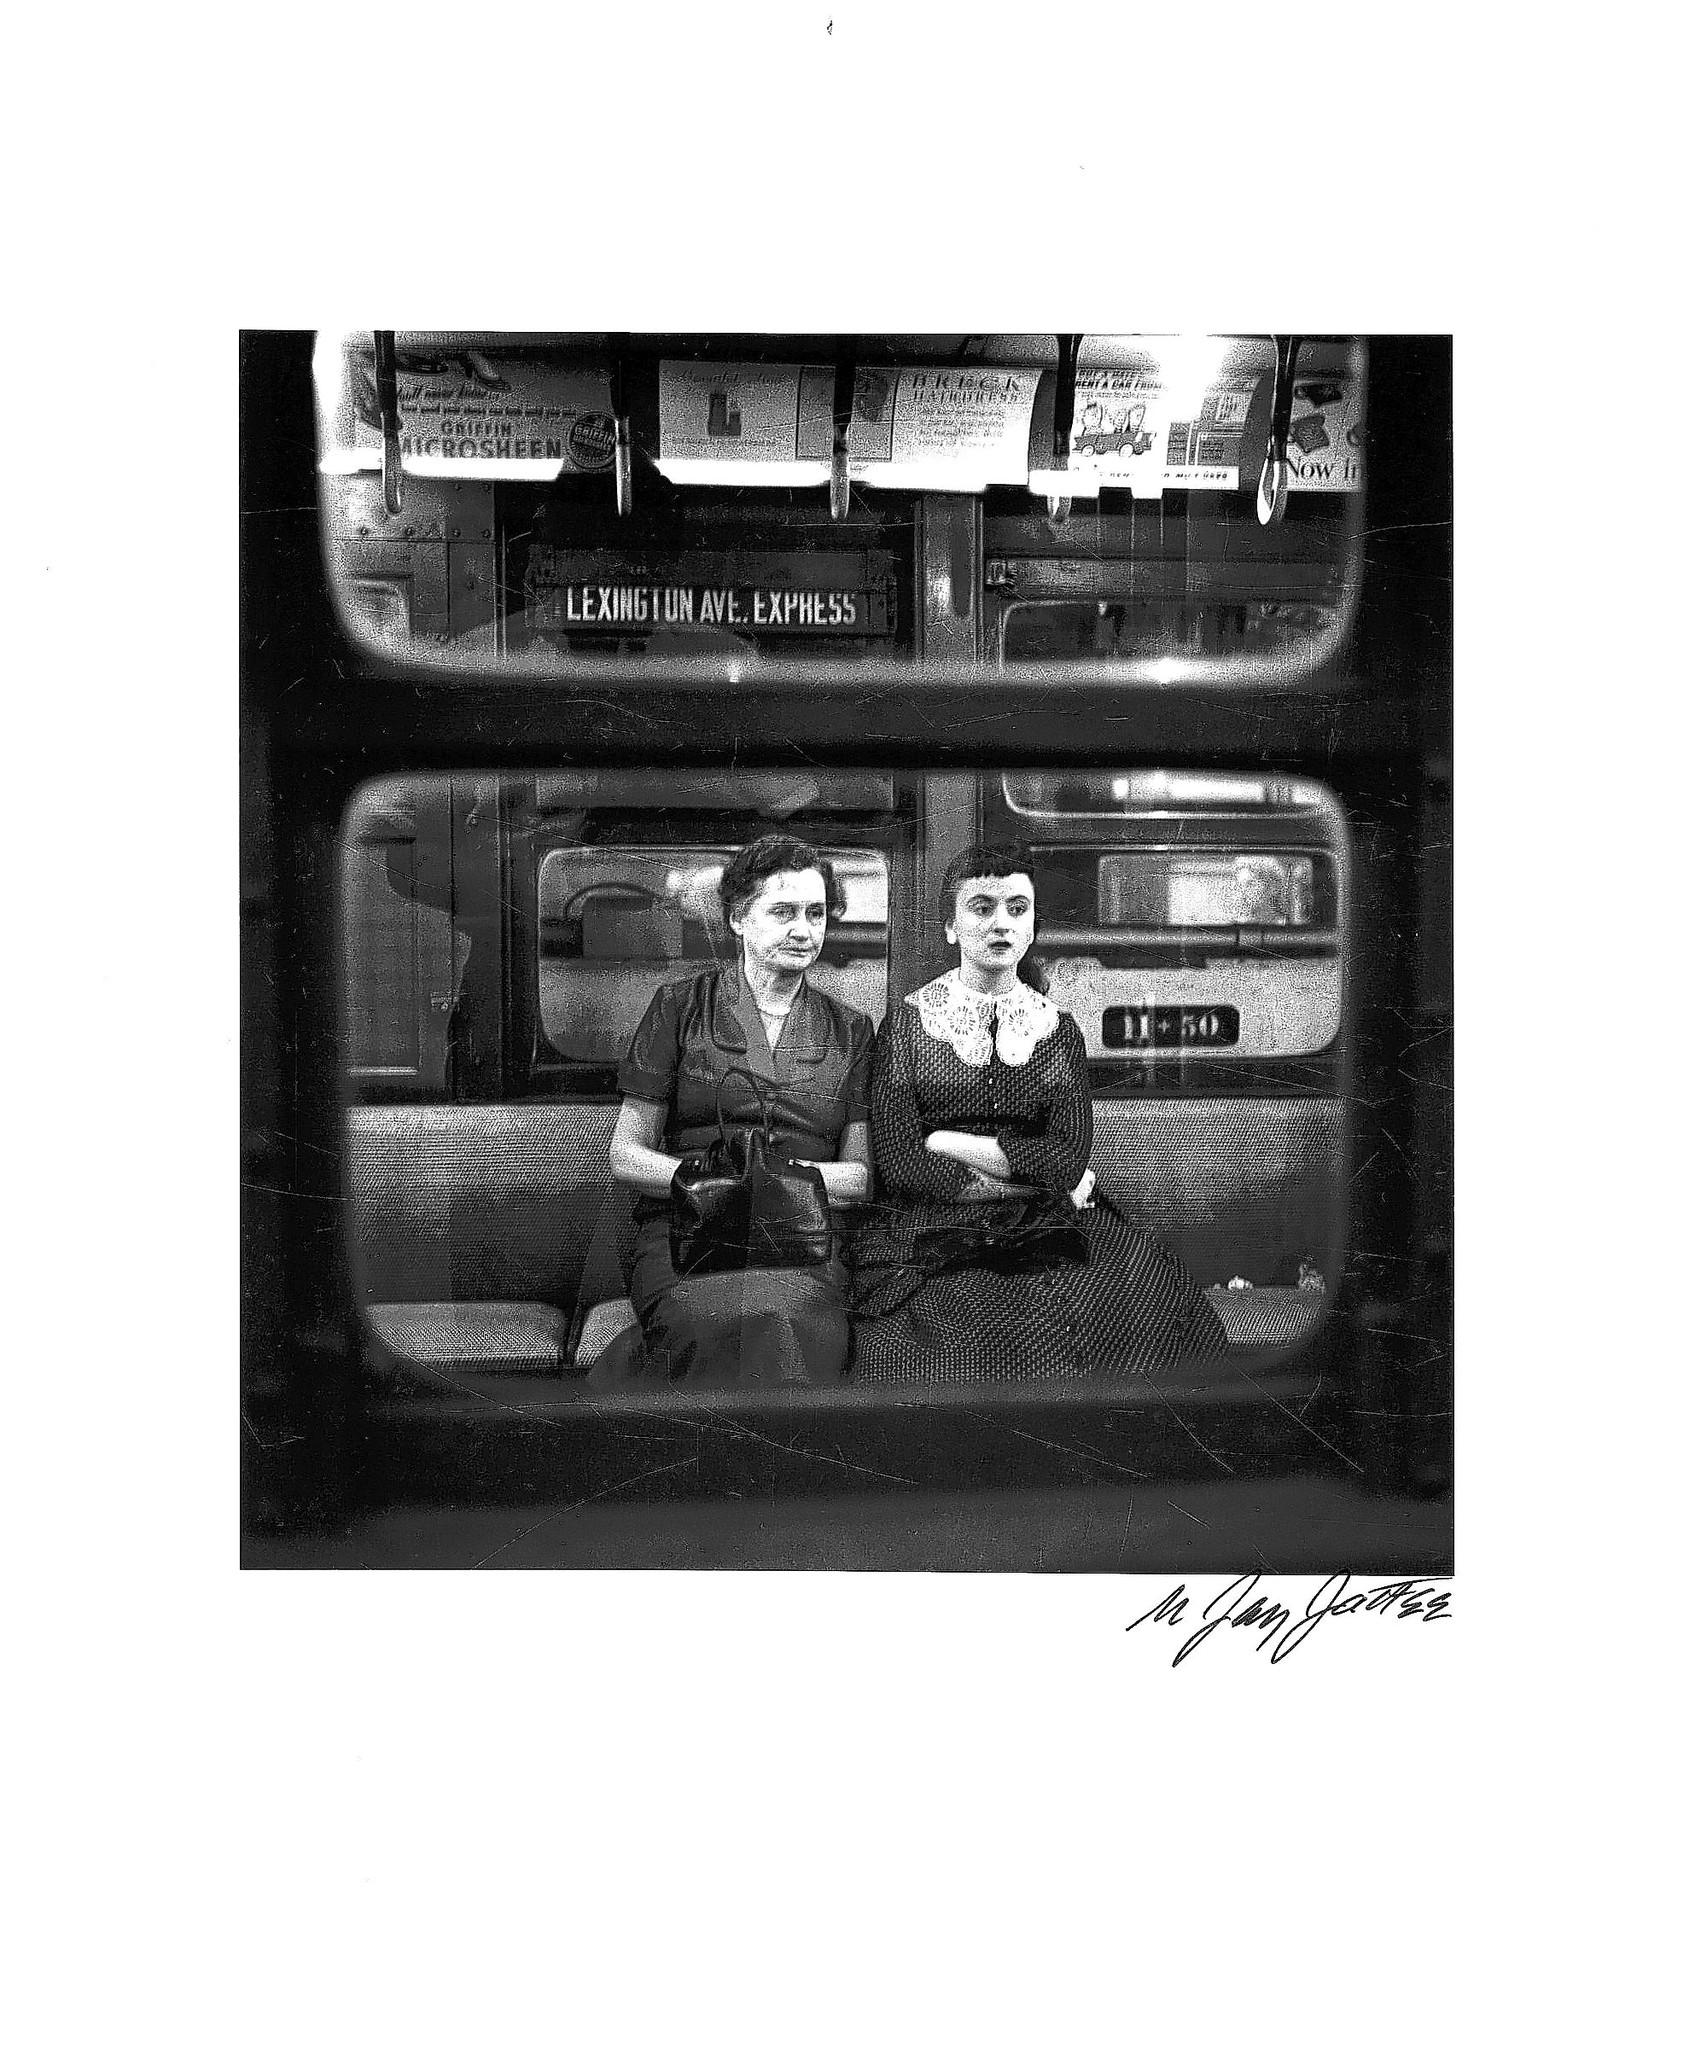 """Woman and Young Girl in Subway"" (1951), by N. Jay Jaffee. This photo is included in the UMBC exhibit, ""N. Jay Jaffee Photographs from Public to Personal, 19471997."""